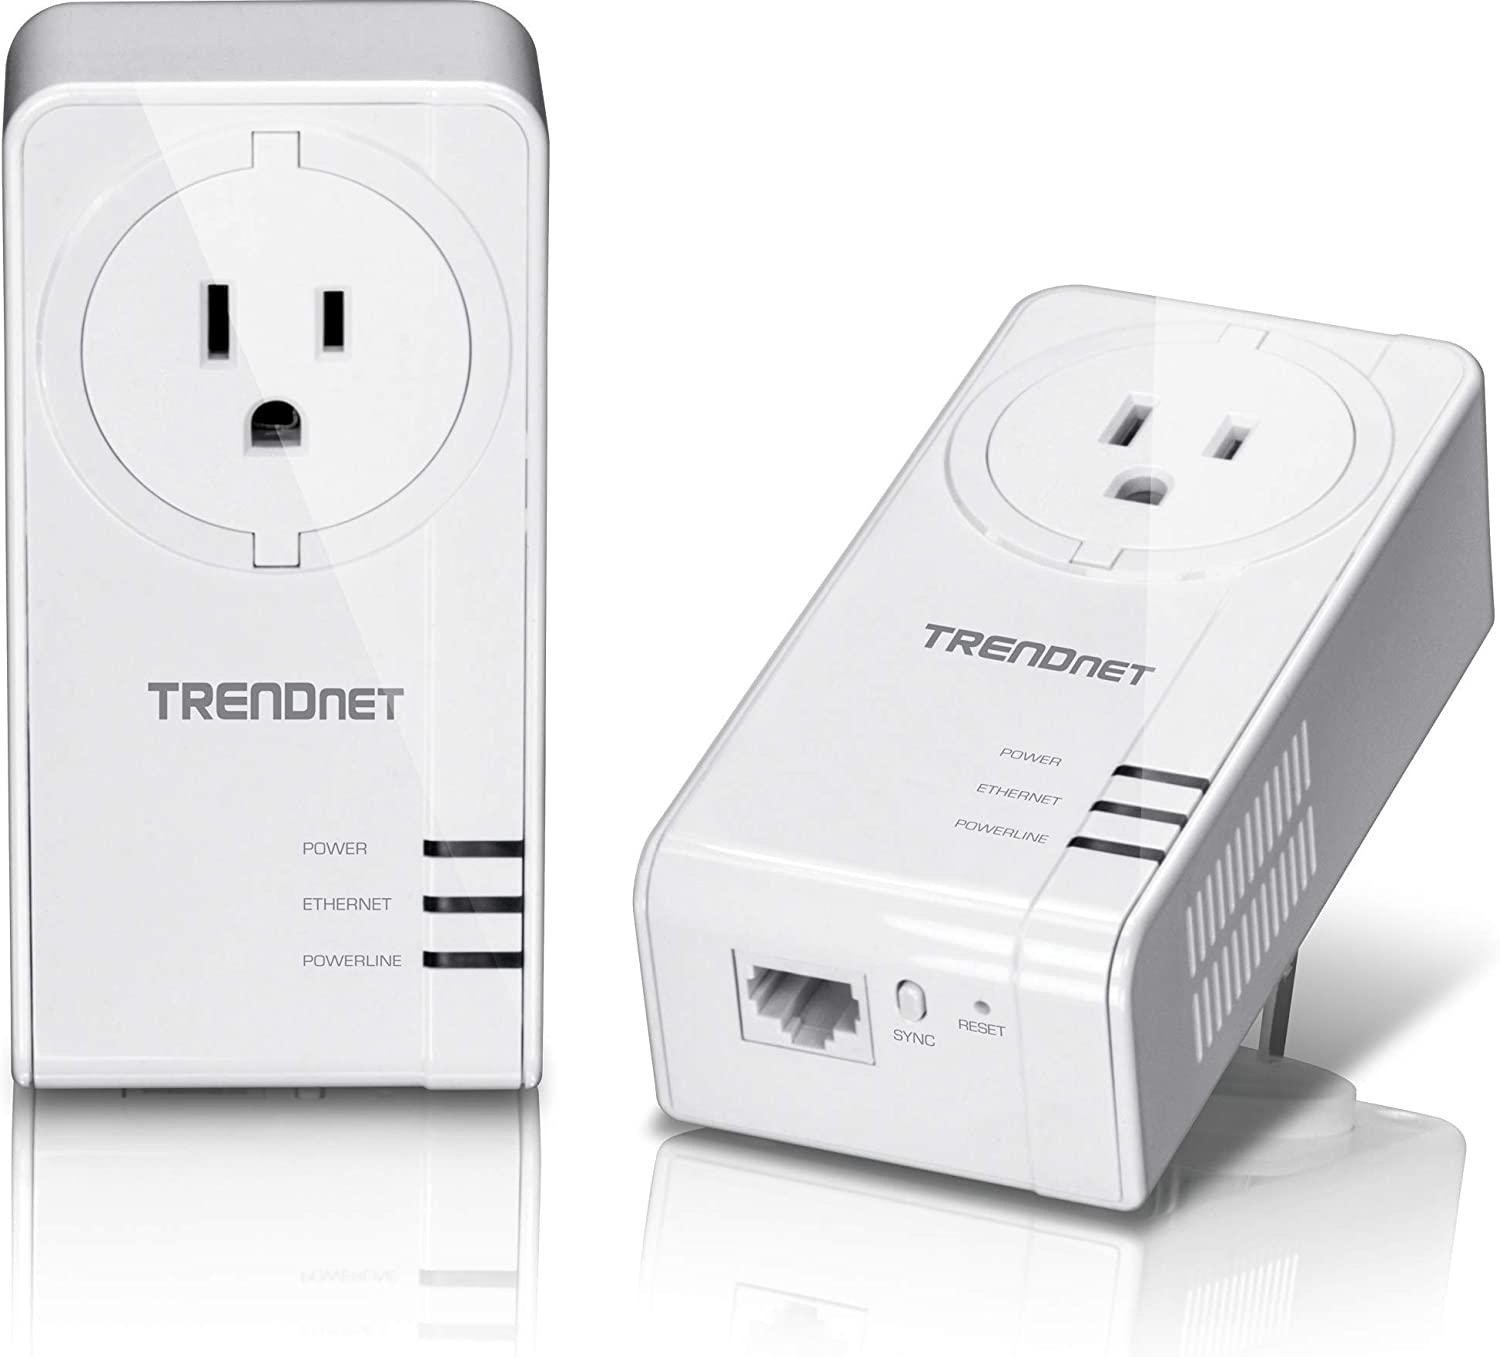 TRENDnet Powerline 1300 AV2 Adapter with Built-in Outlet Adapter Kit, Includes 2 x TPL-423E Adapters, IEEE 1905.1 & IEEE 1901, Gigabit Port, Range Up to 300m (984 ft.), TPL-423E2K (Renewed)